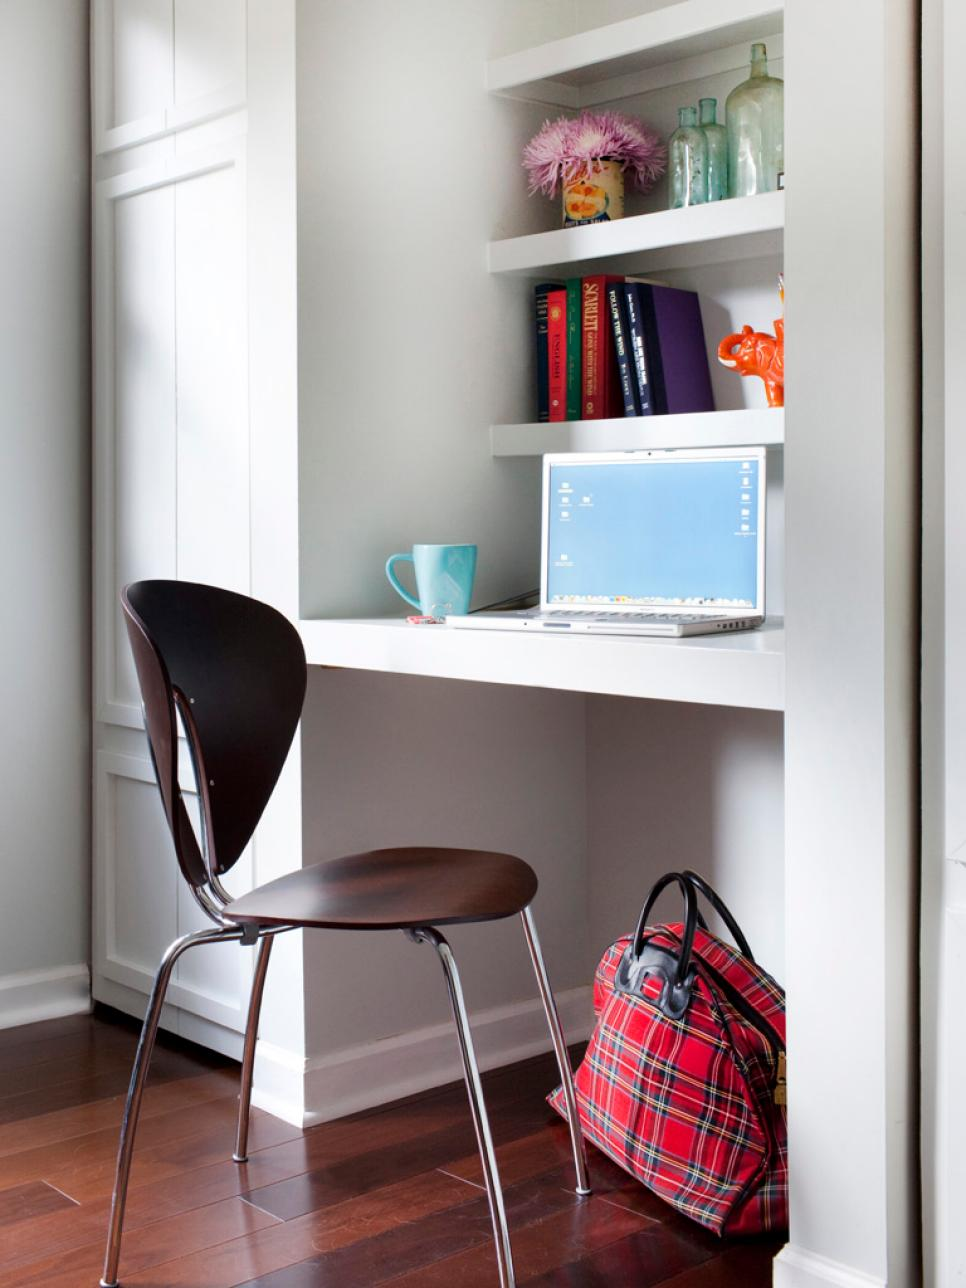 office arrangement designs small home office makeshift desk adorable interior furniture desk ideas small